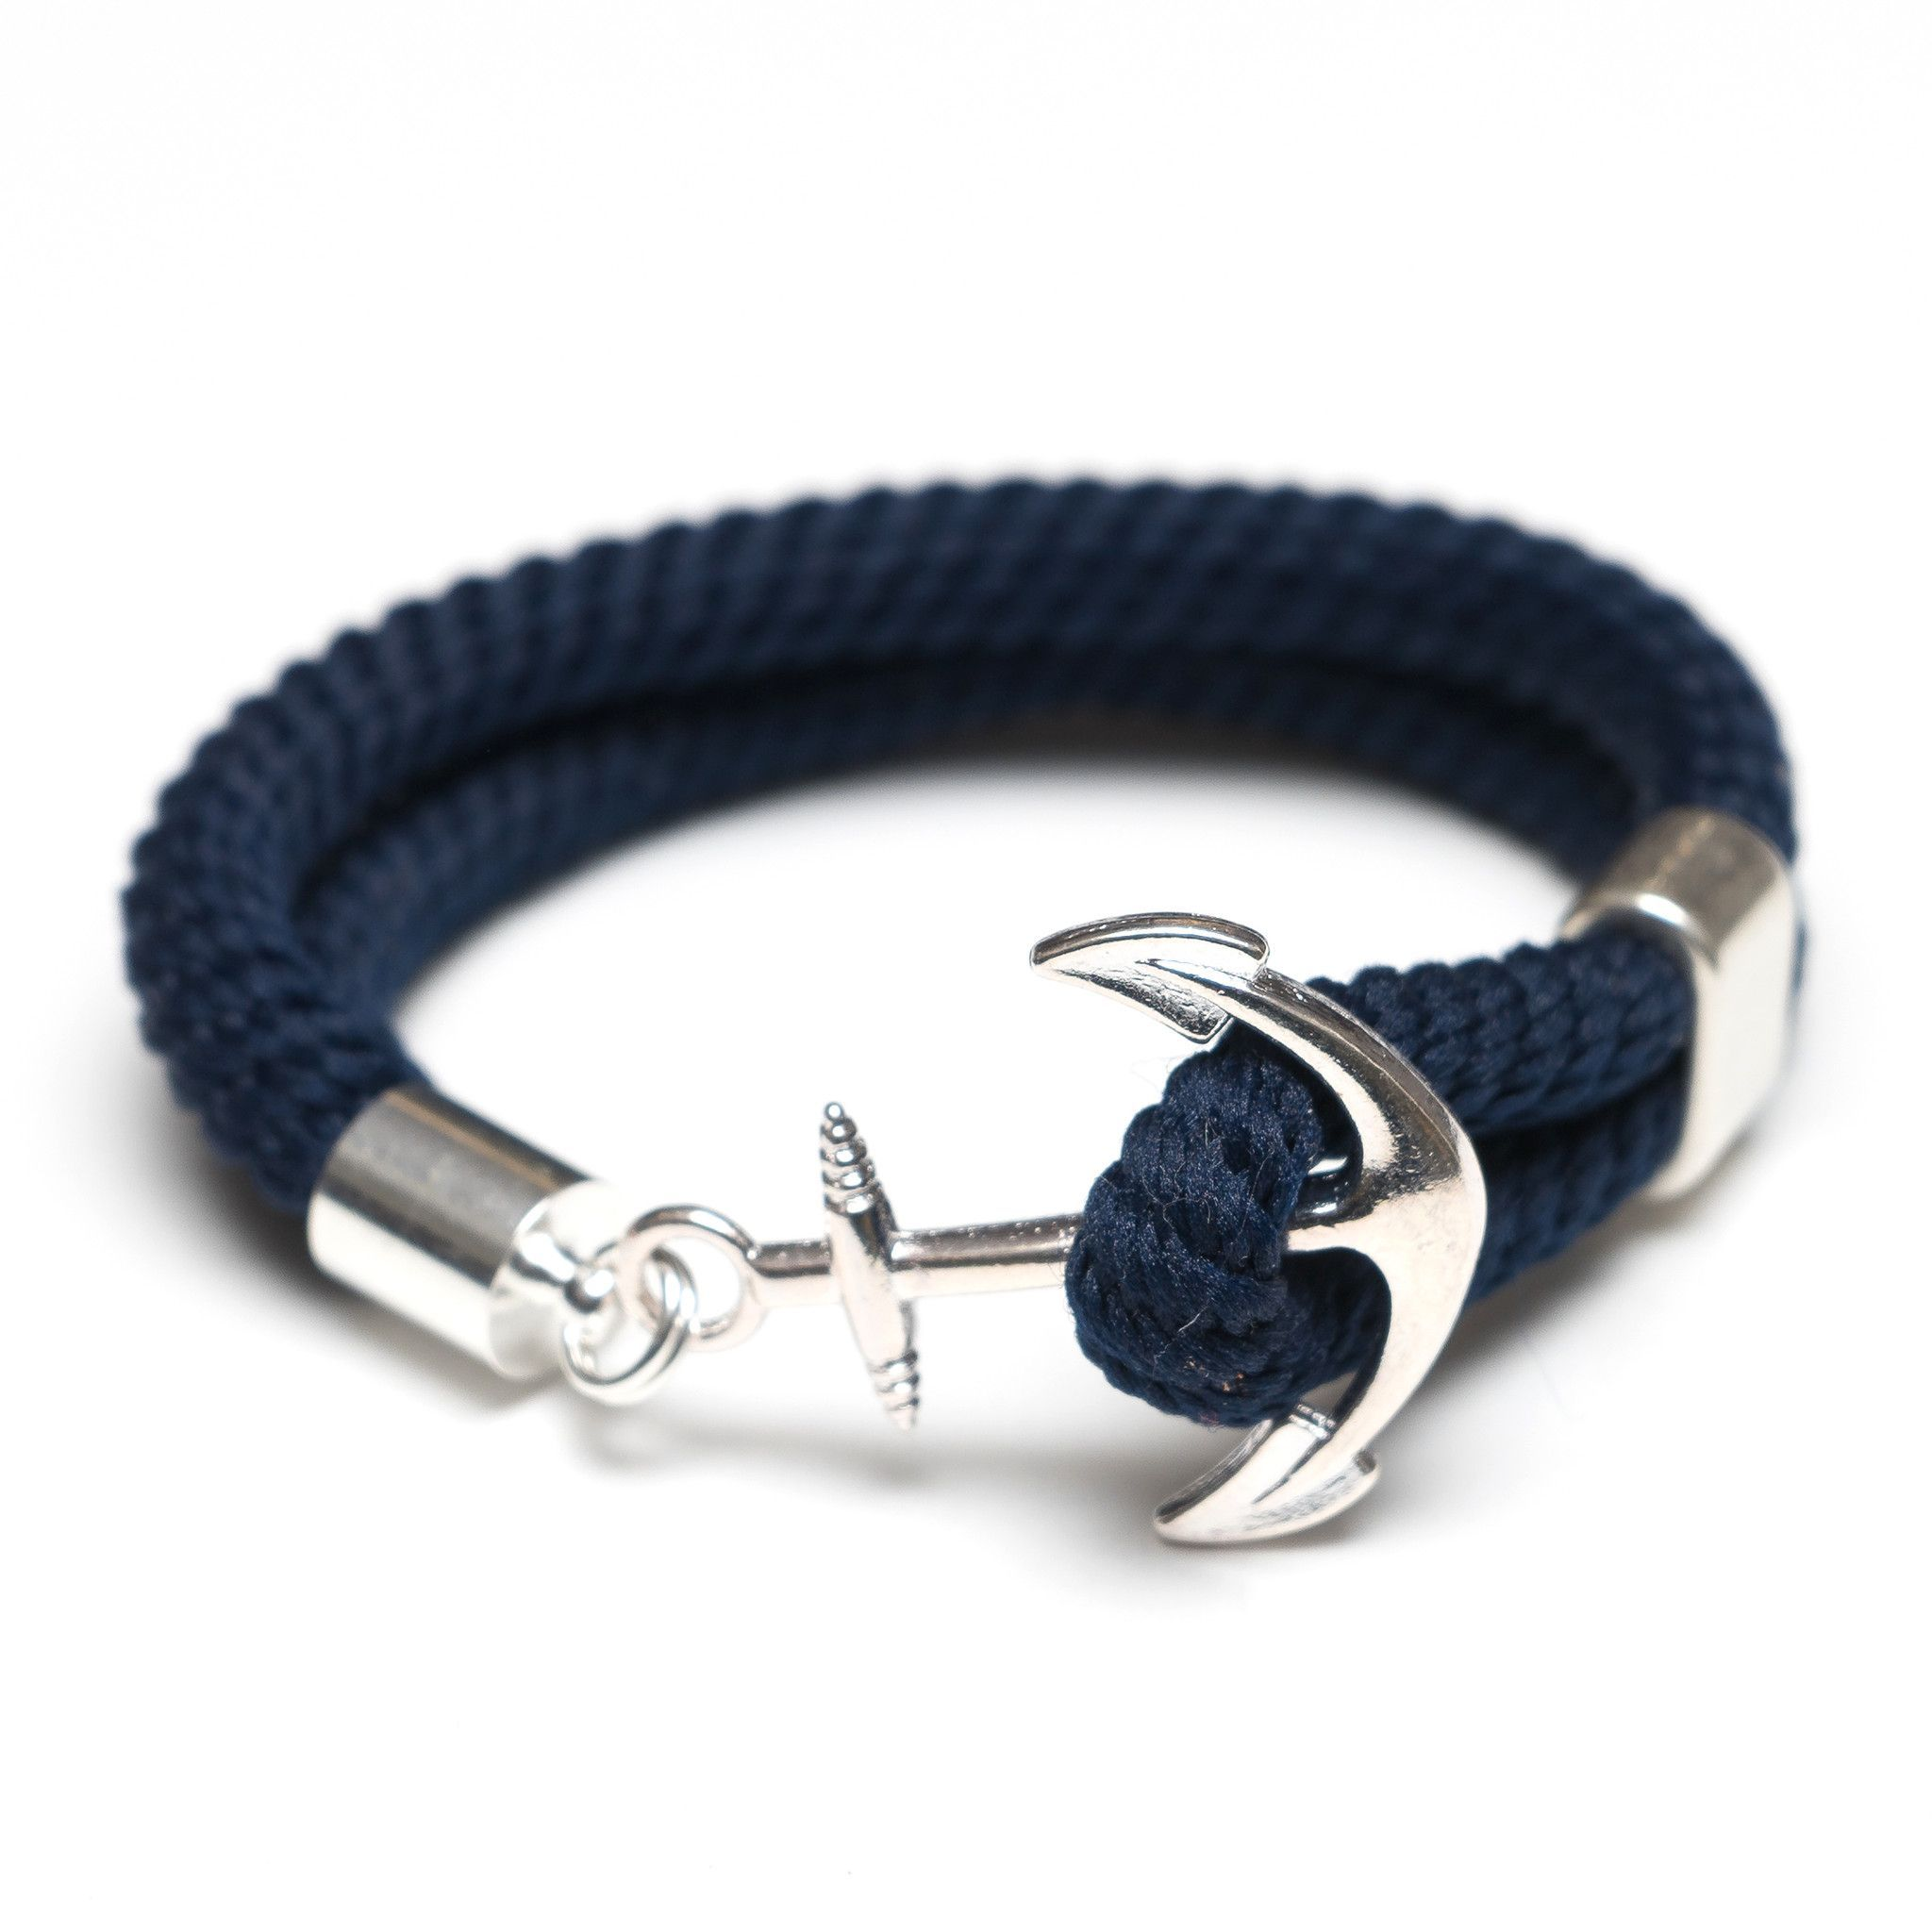 Our Anchor Bracelet Is Essential For Any Nautical Lover Navy Blue Rope Silver Plated Clasp Er Bead